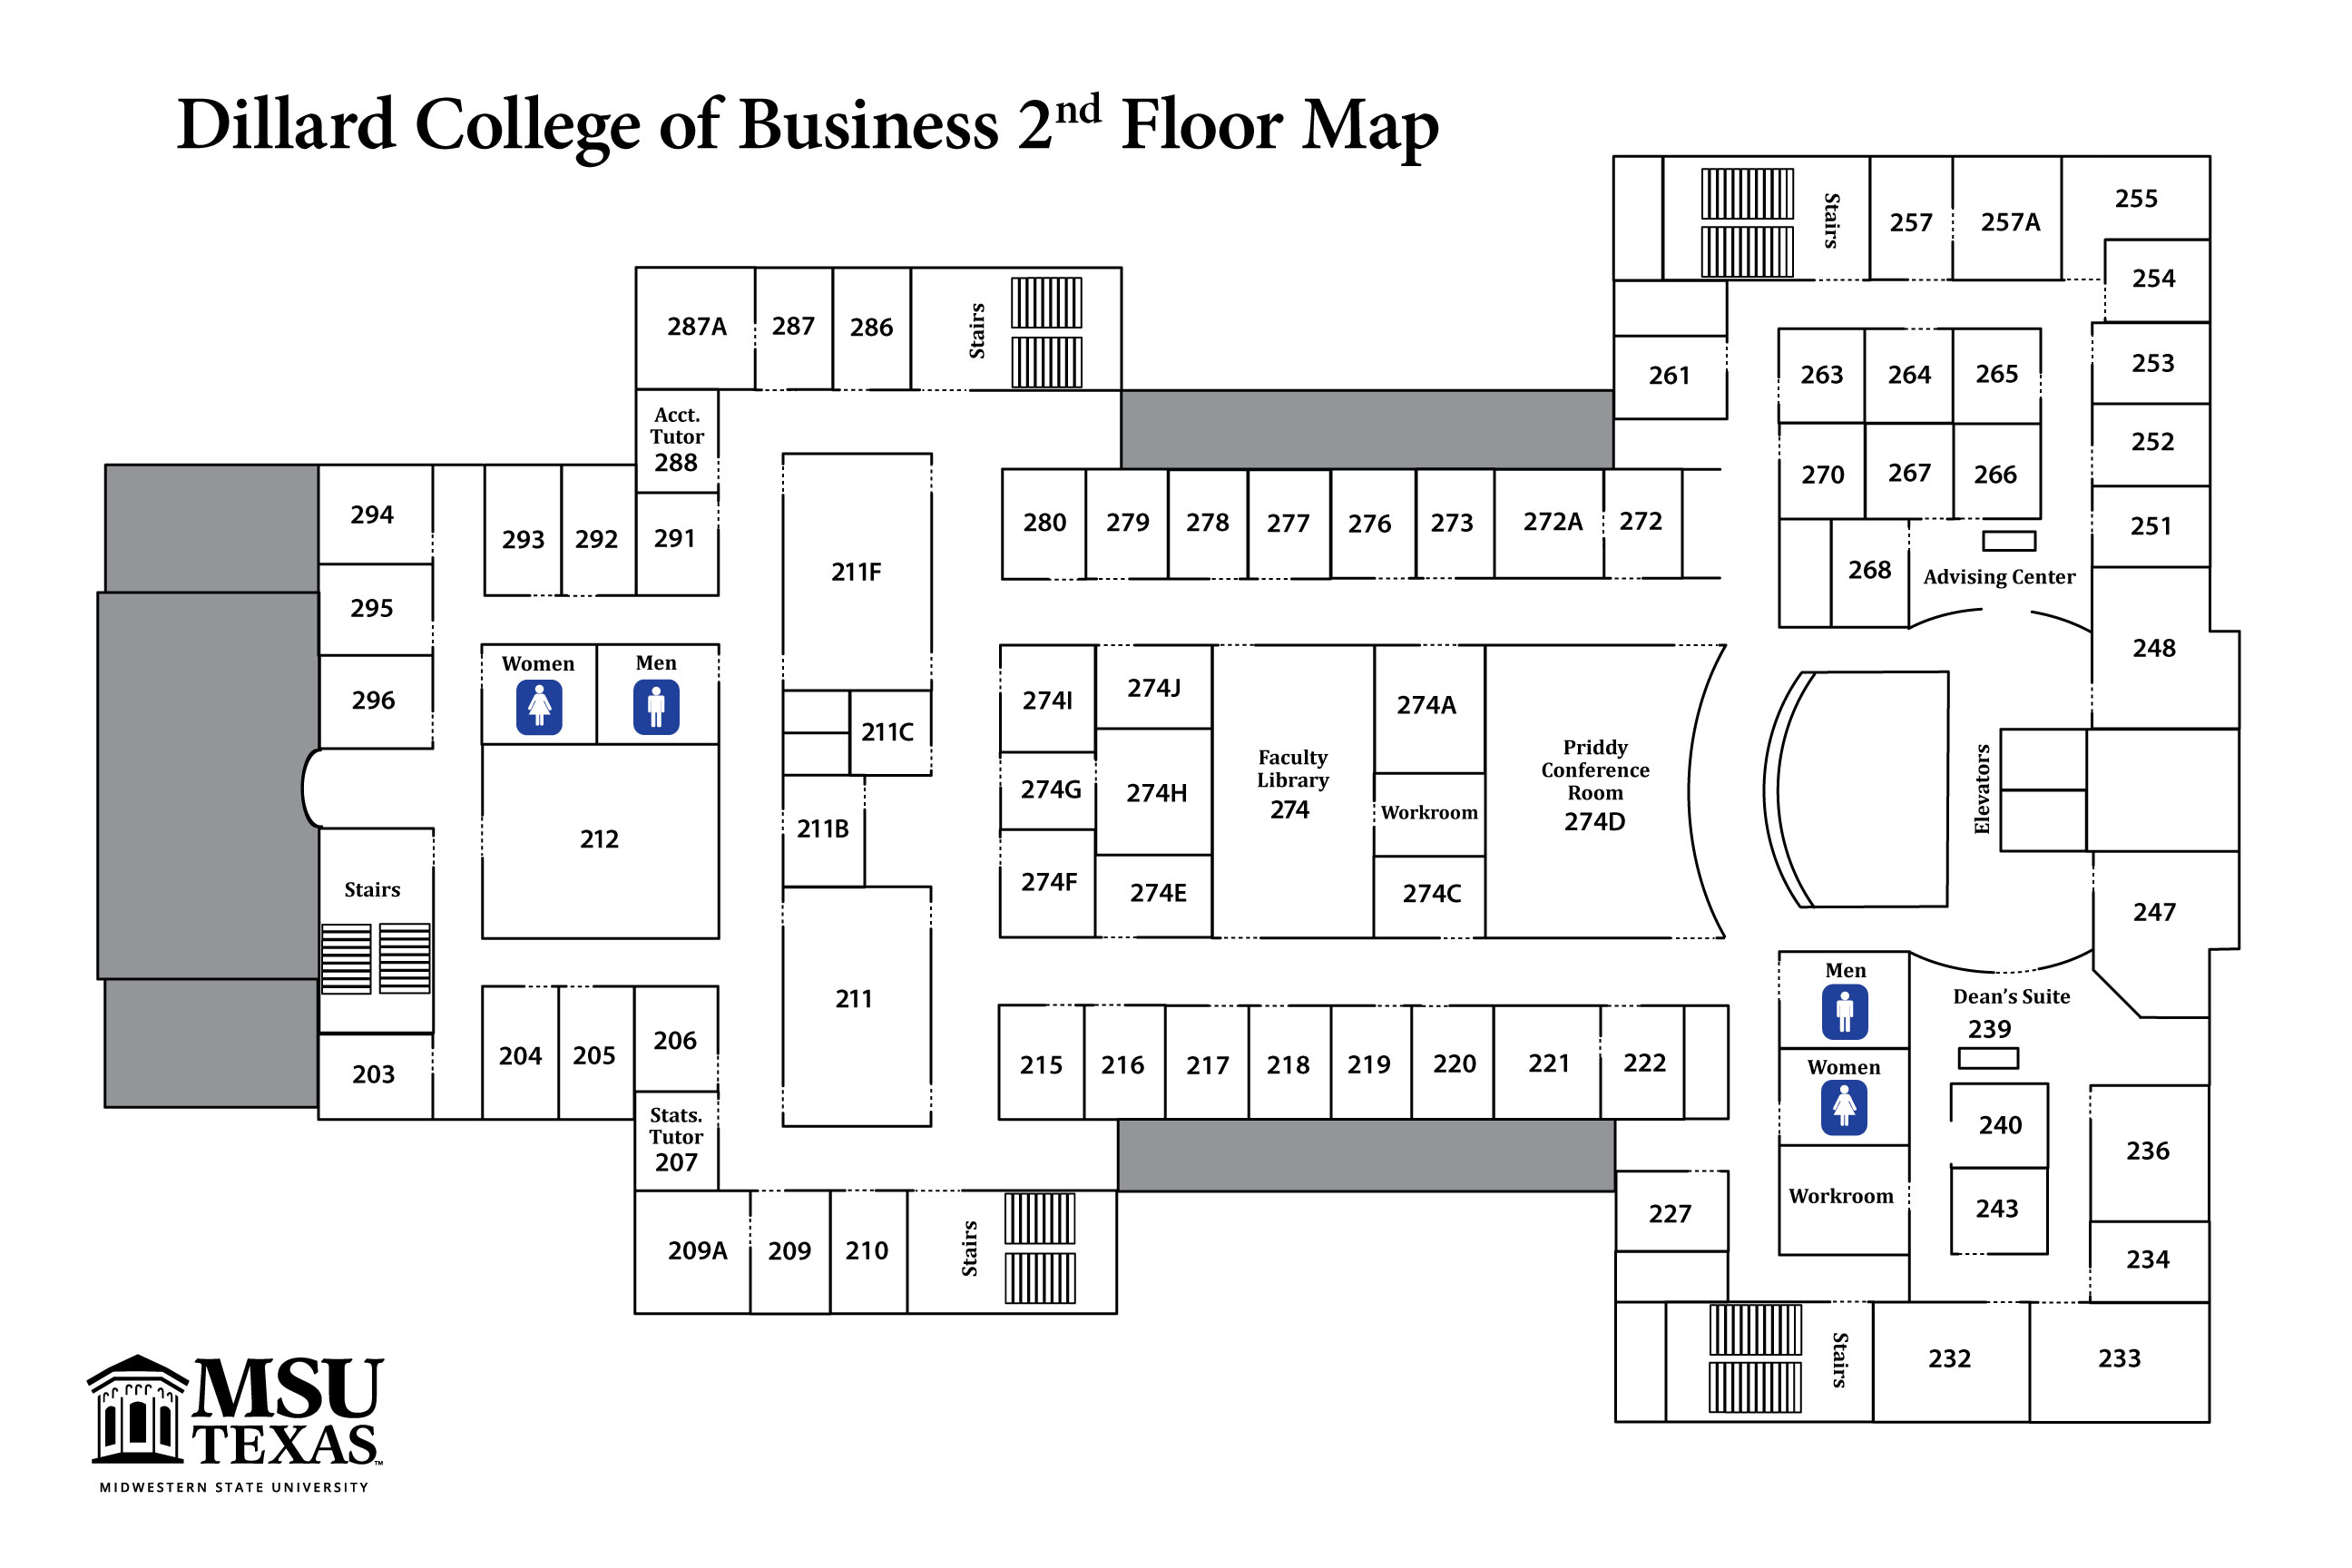 Dillard College Maps College Information Business Academics Msu Texas